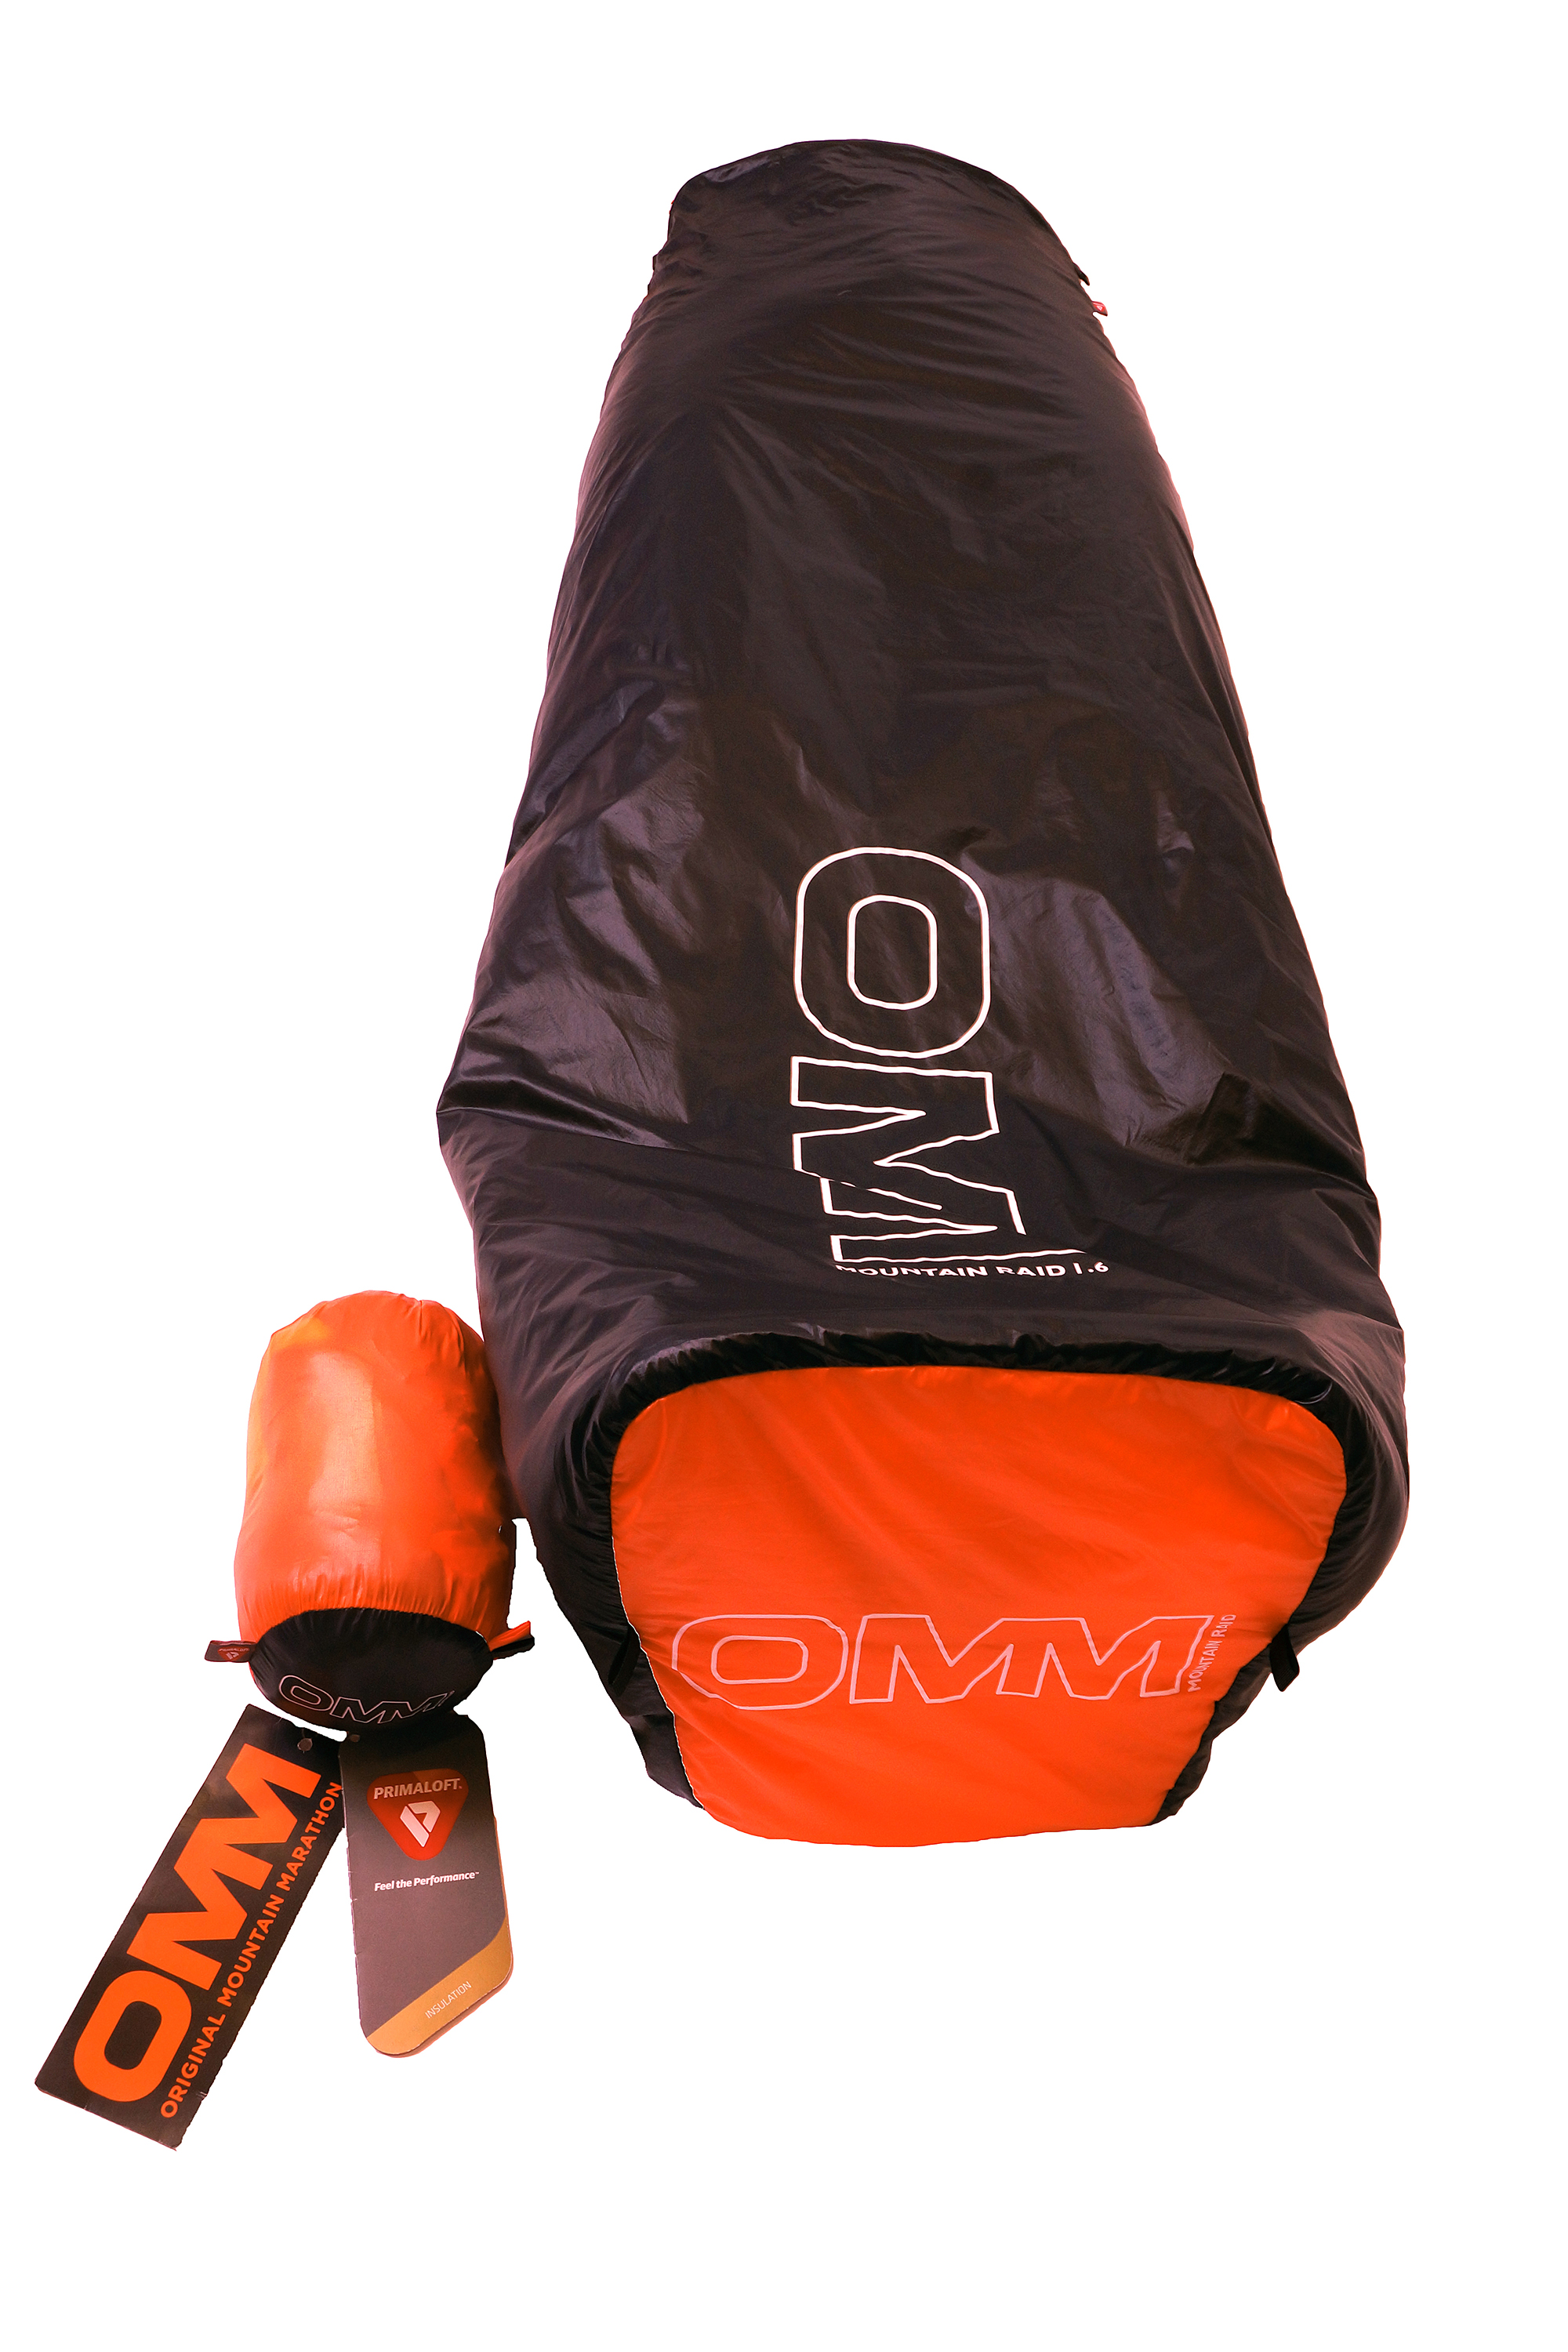 OMM Mountain Raid PA 1.0 (1/2 Bag) | Travel bags